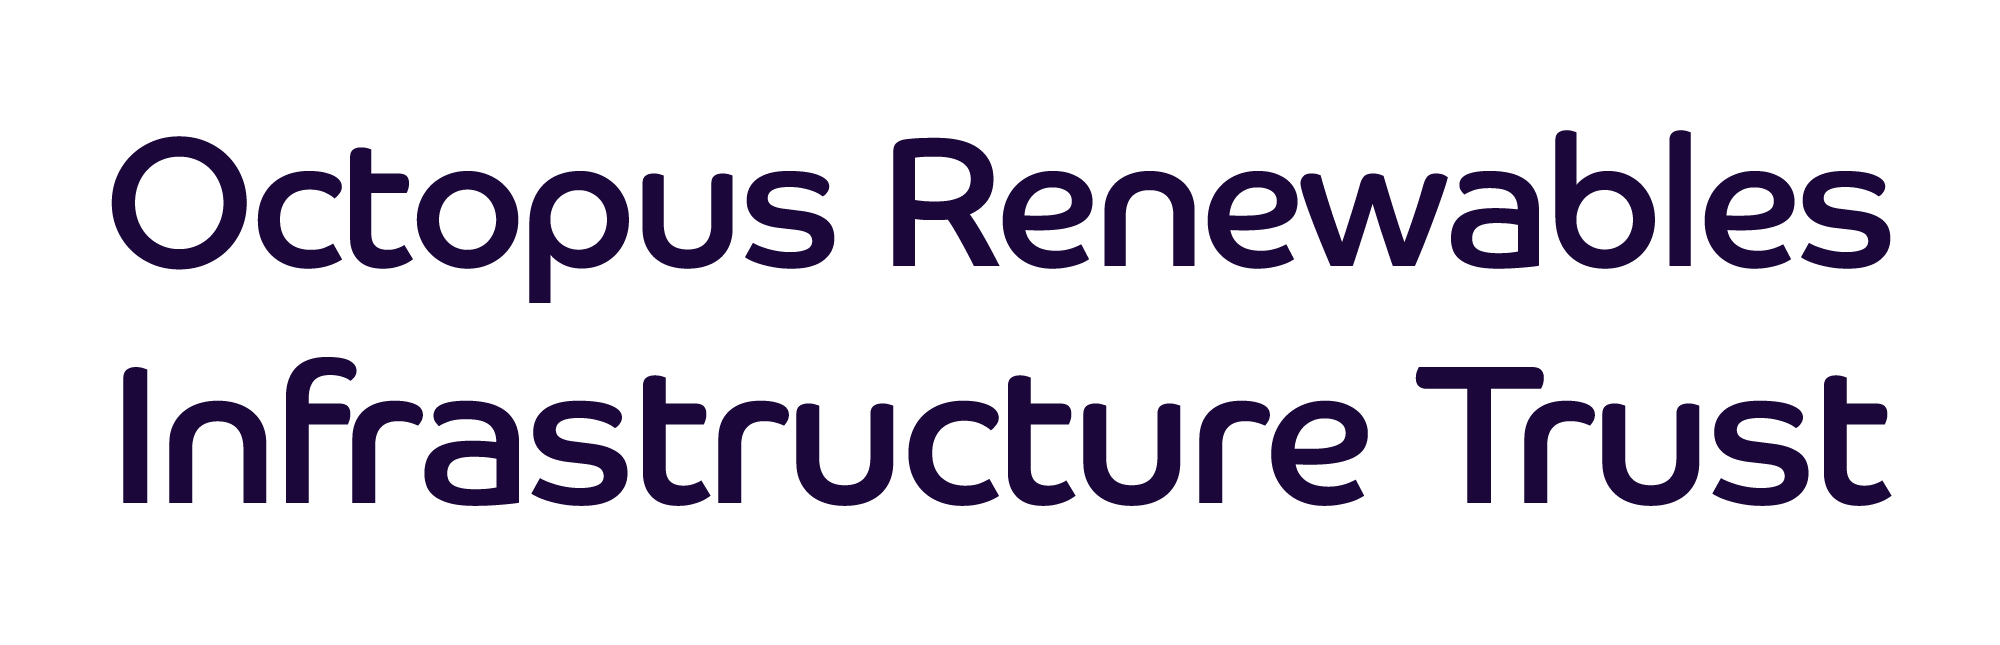 OCTOPUS RENEWABLES INFRASTRUCTURE TRUST PLC Logo